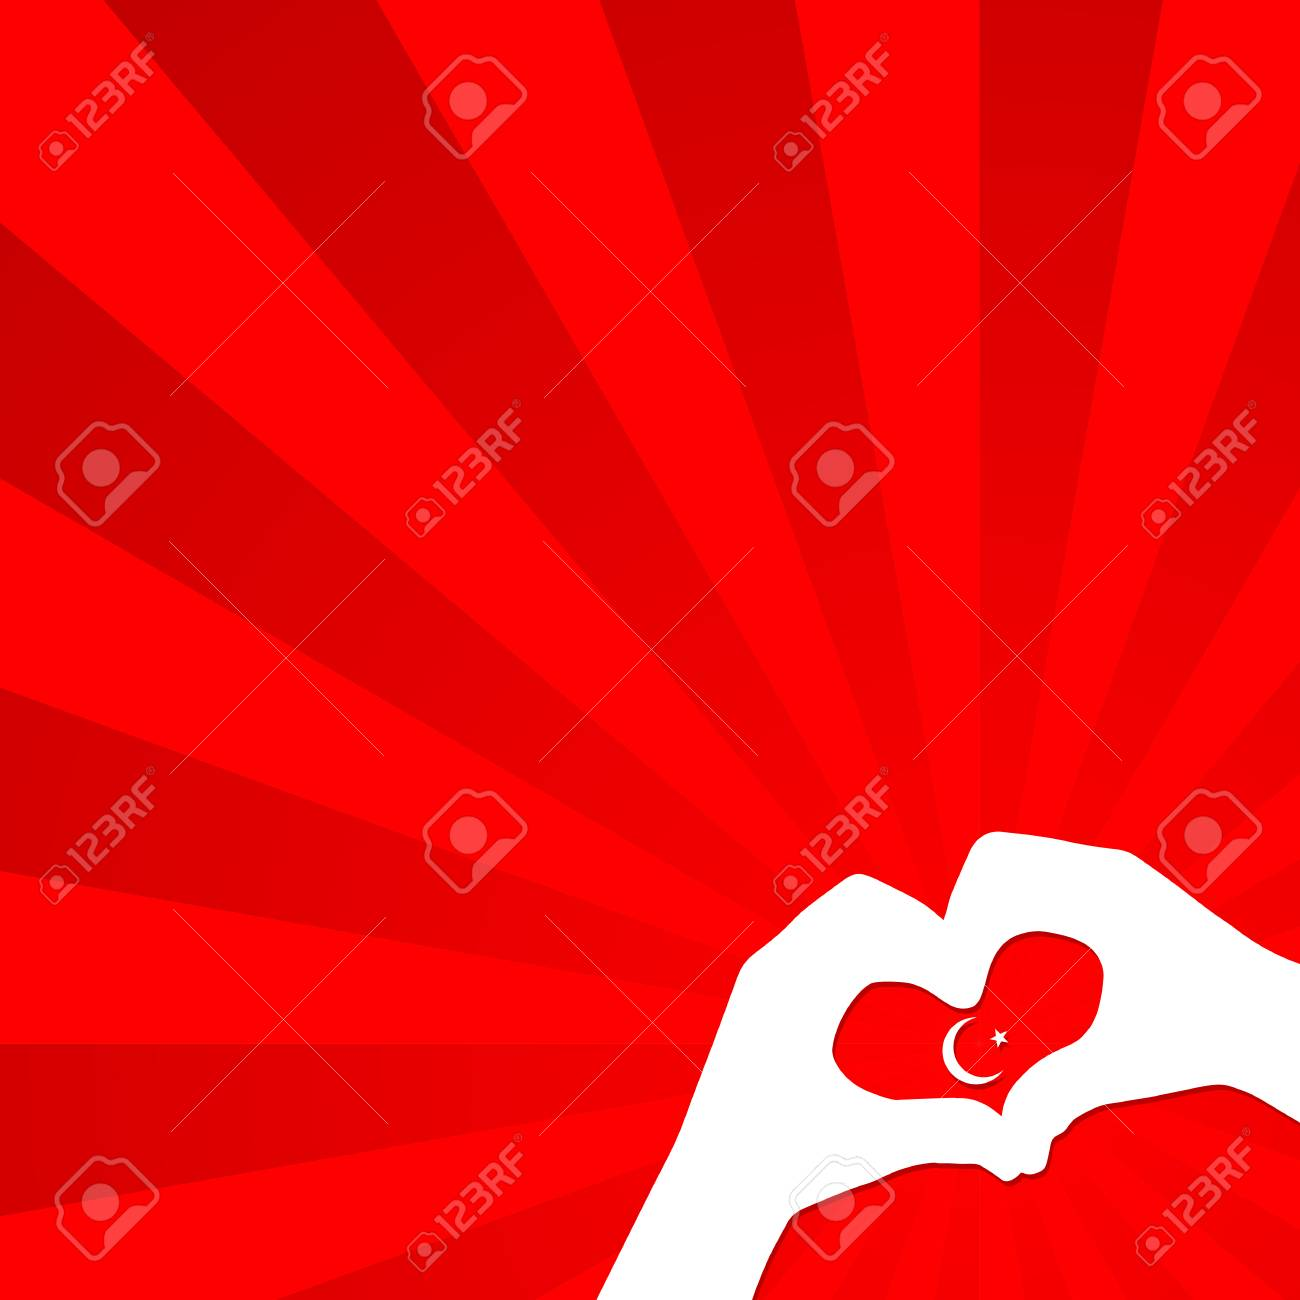 Children S Hands With A Moon And A Star On The Red Background Royalty Free Cliparts Vectors And Stock Illustration Image 98954732